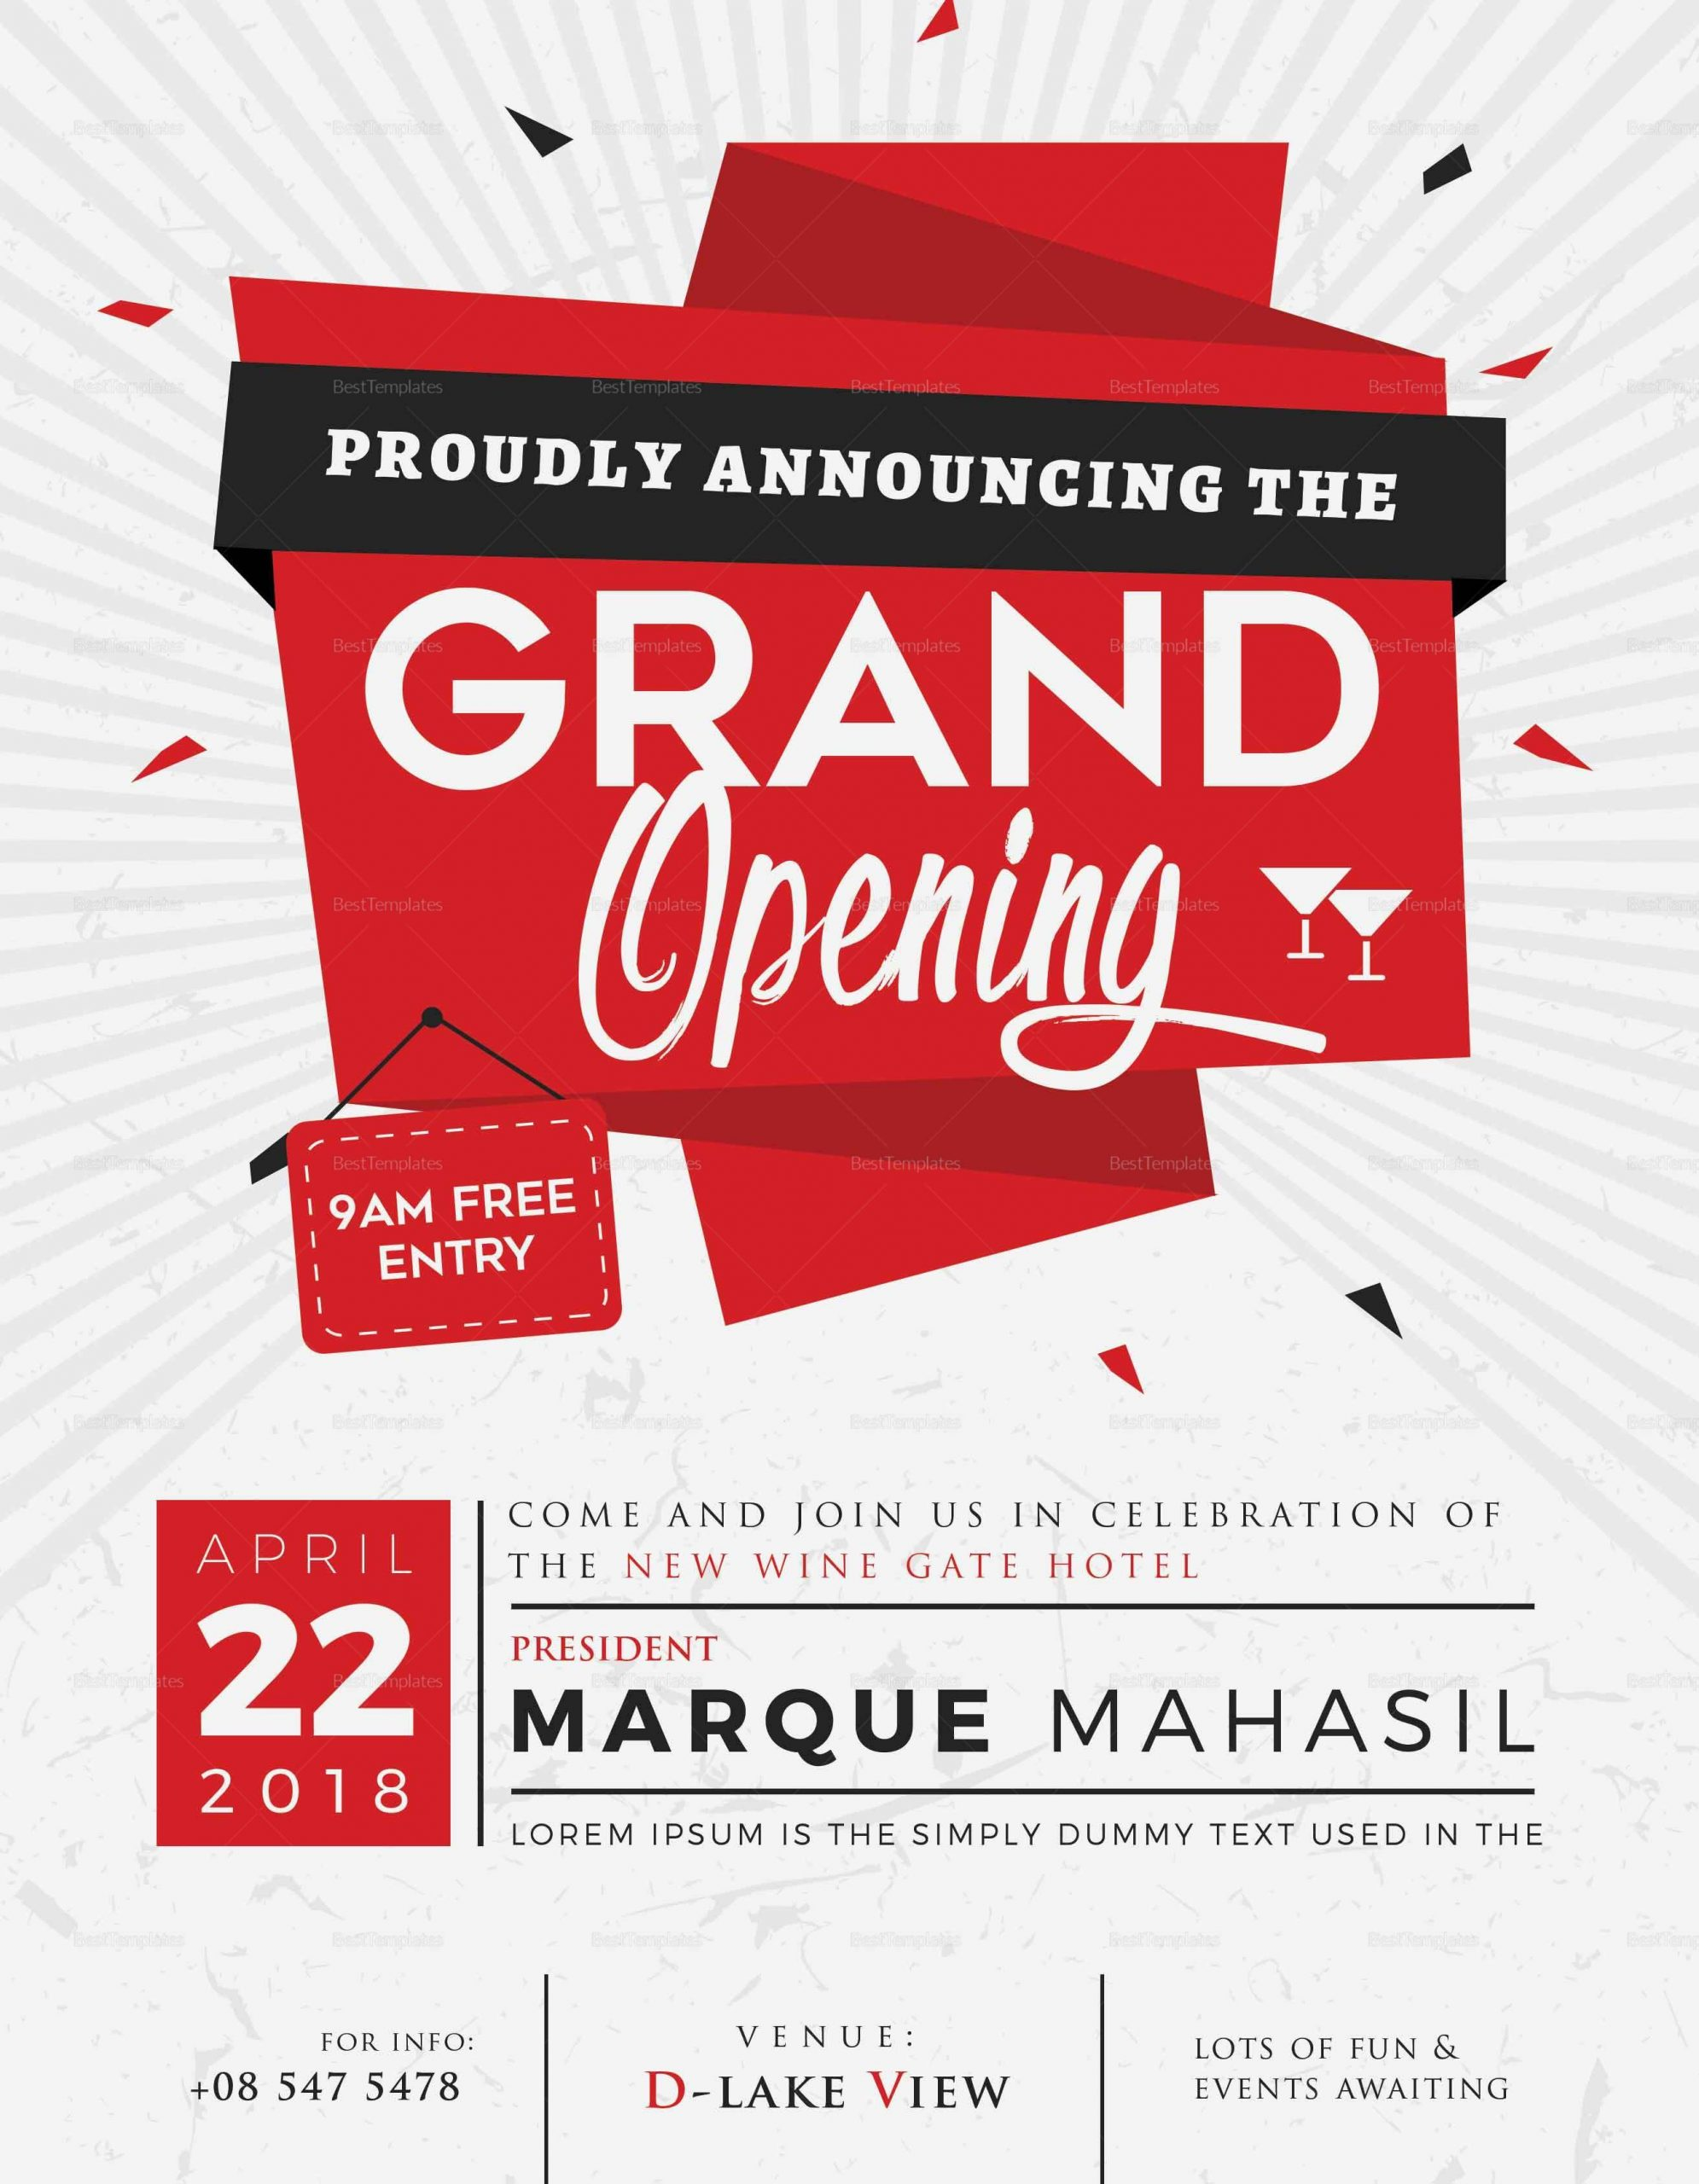 grand opening flyer template  Grand Opening Flyer Design Template in Word, PSD ..